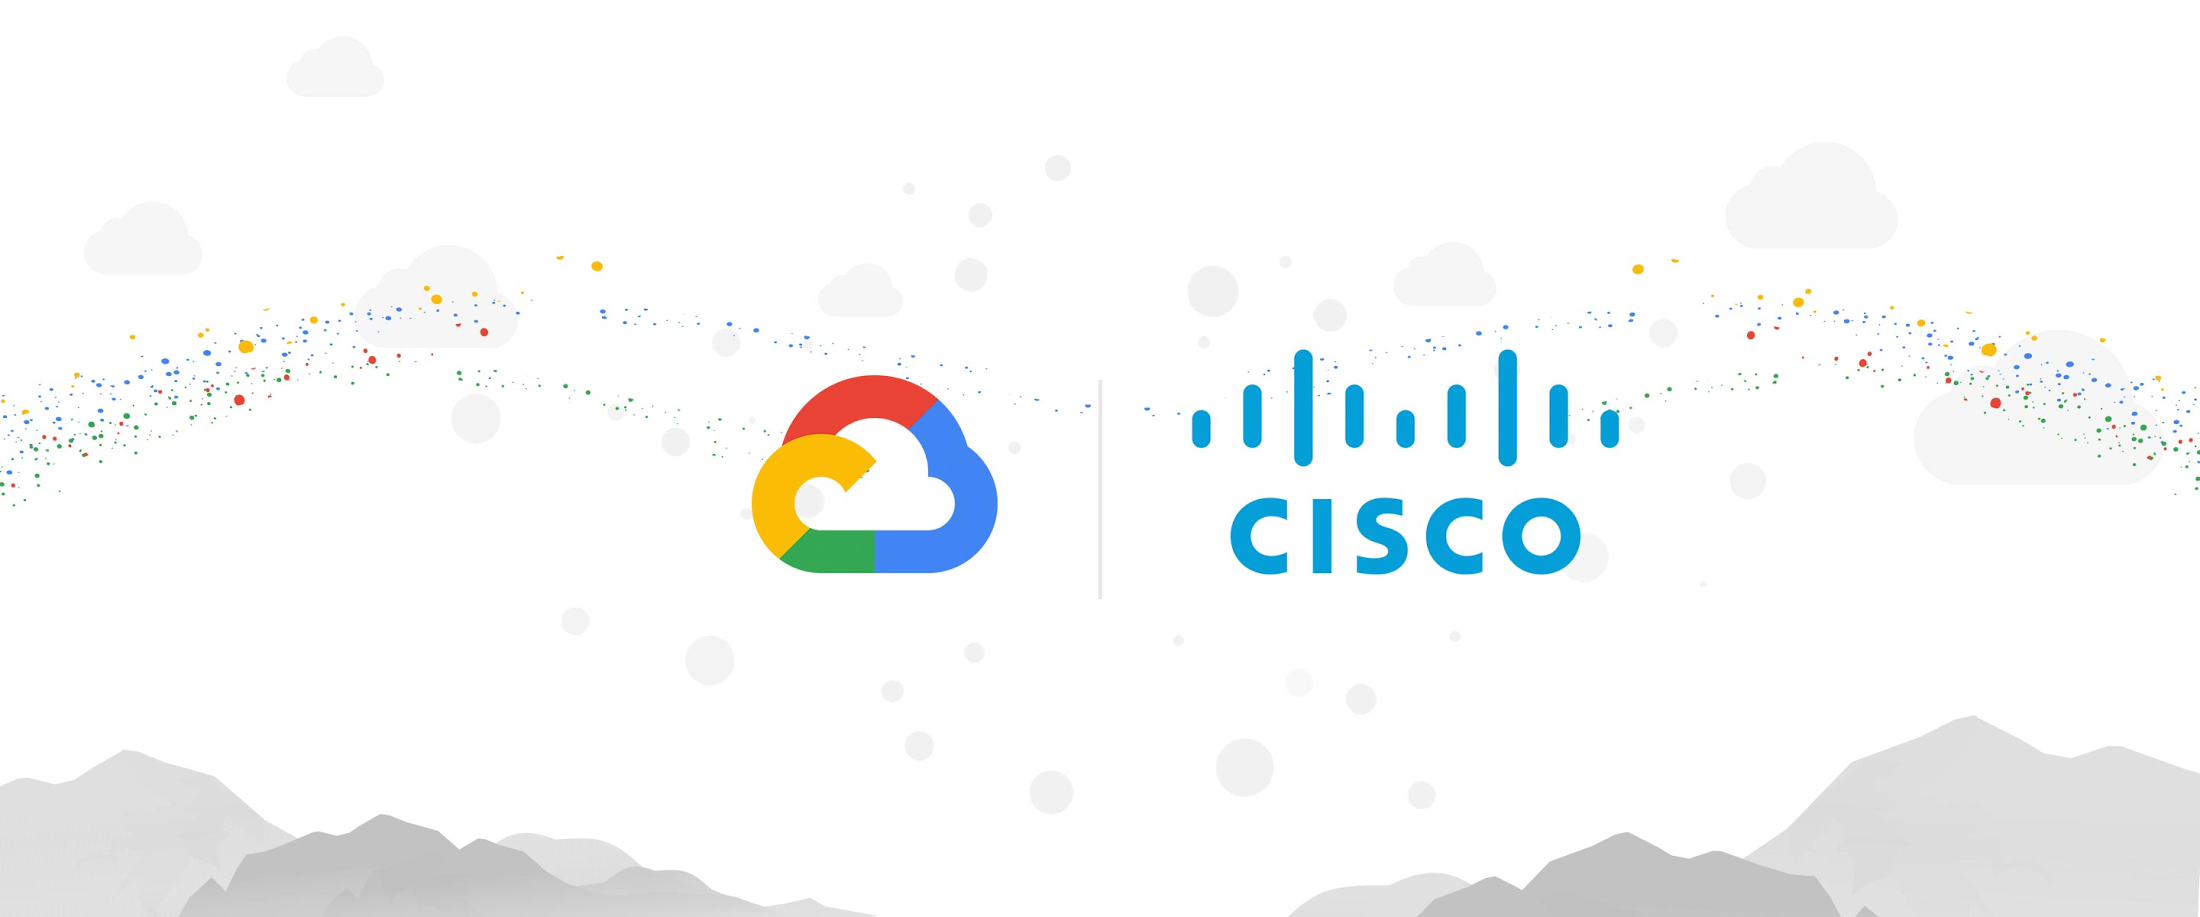 Updates on Google collaborations with Cisco featured at WebexOne